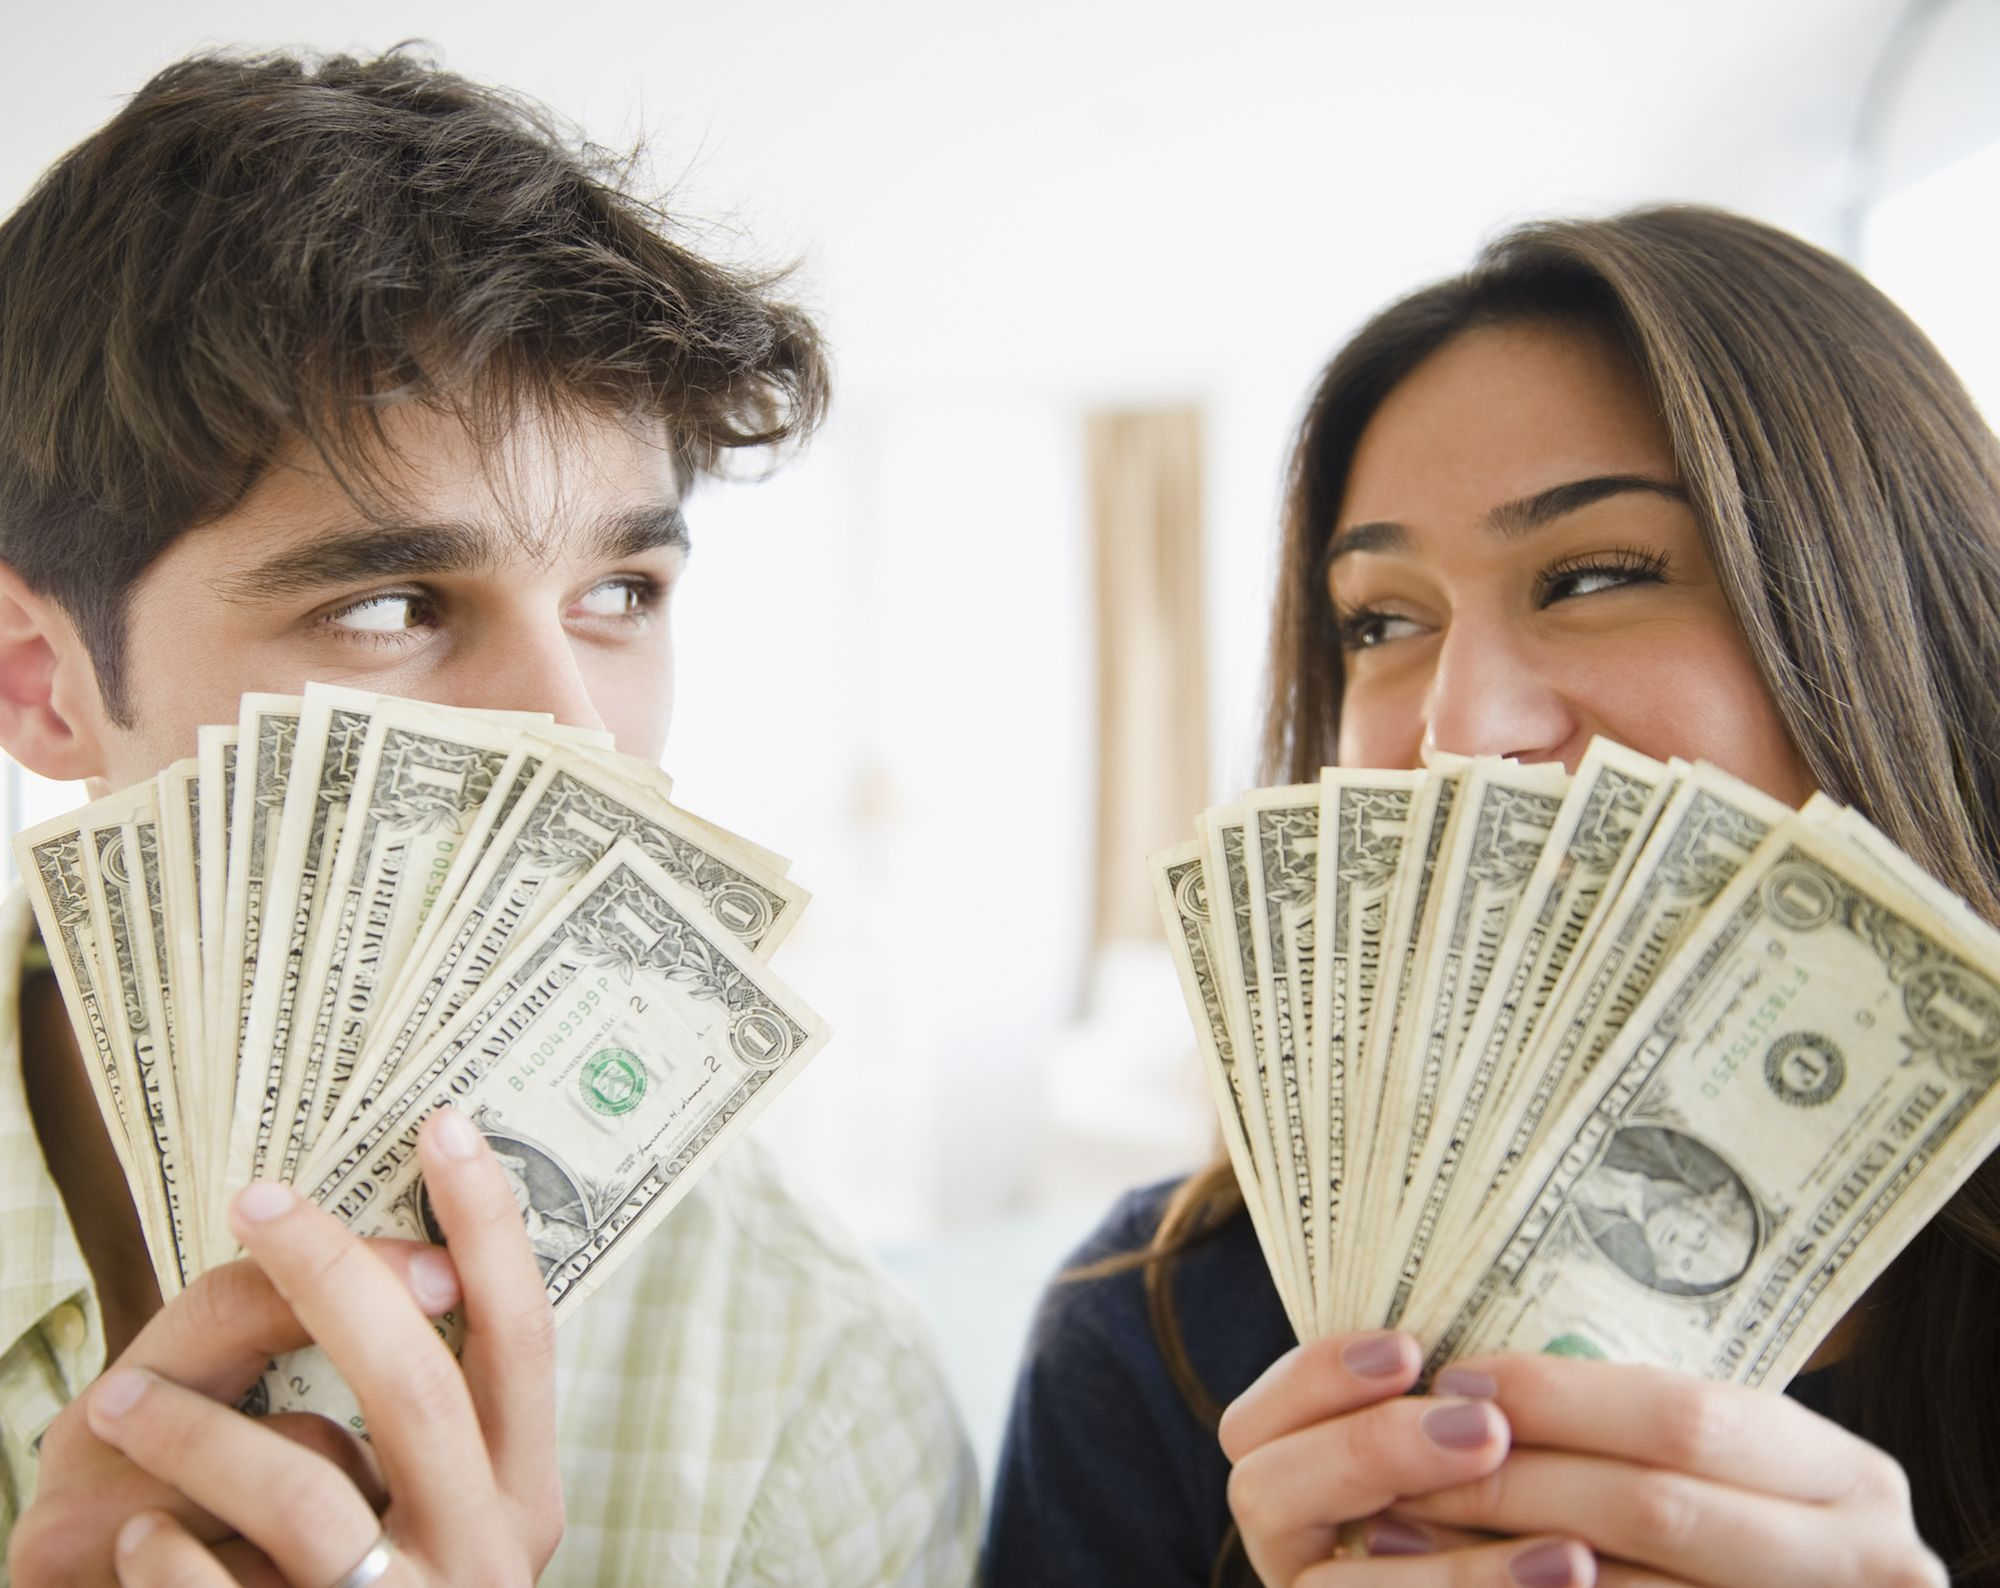 6 Money-Saving Mantras Financial Experts Swear Will Get You Through Any Problem advise